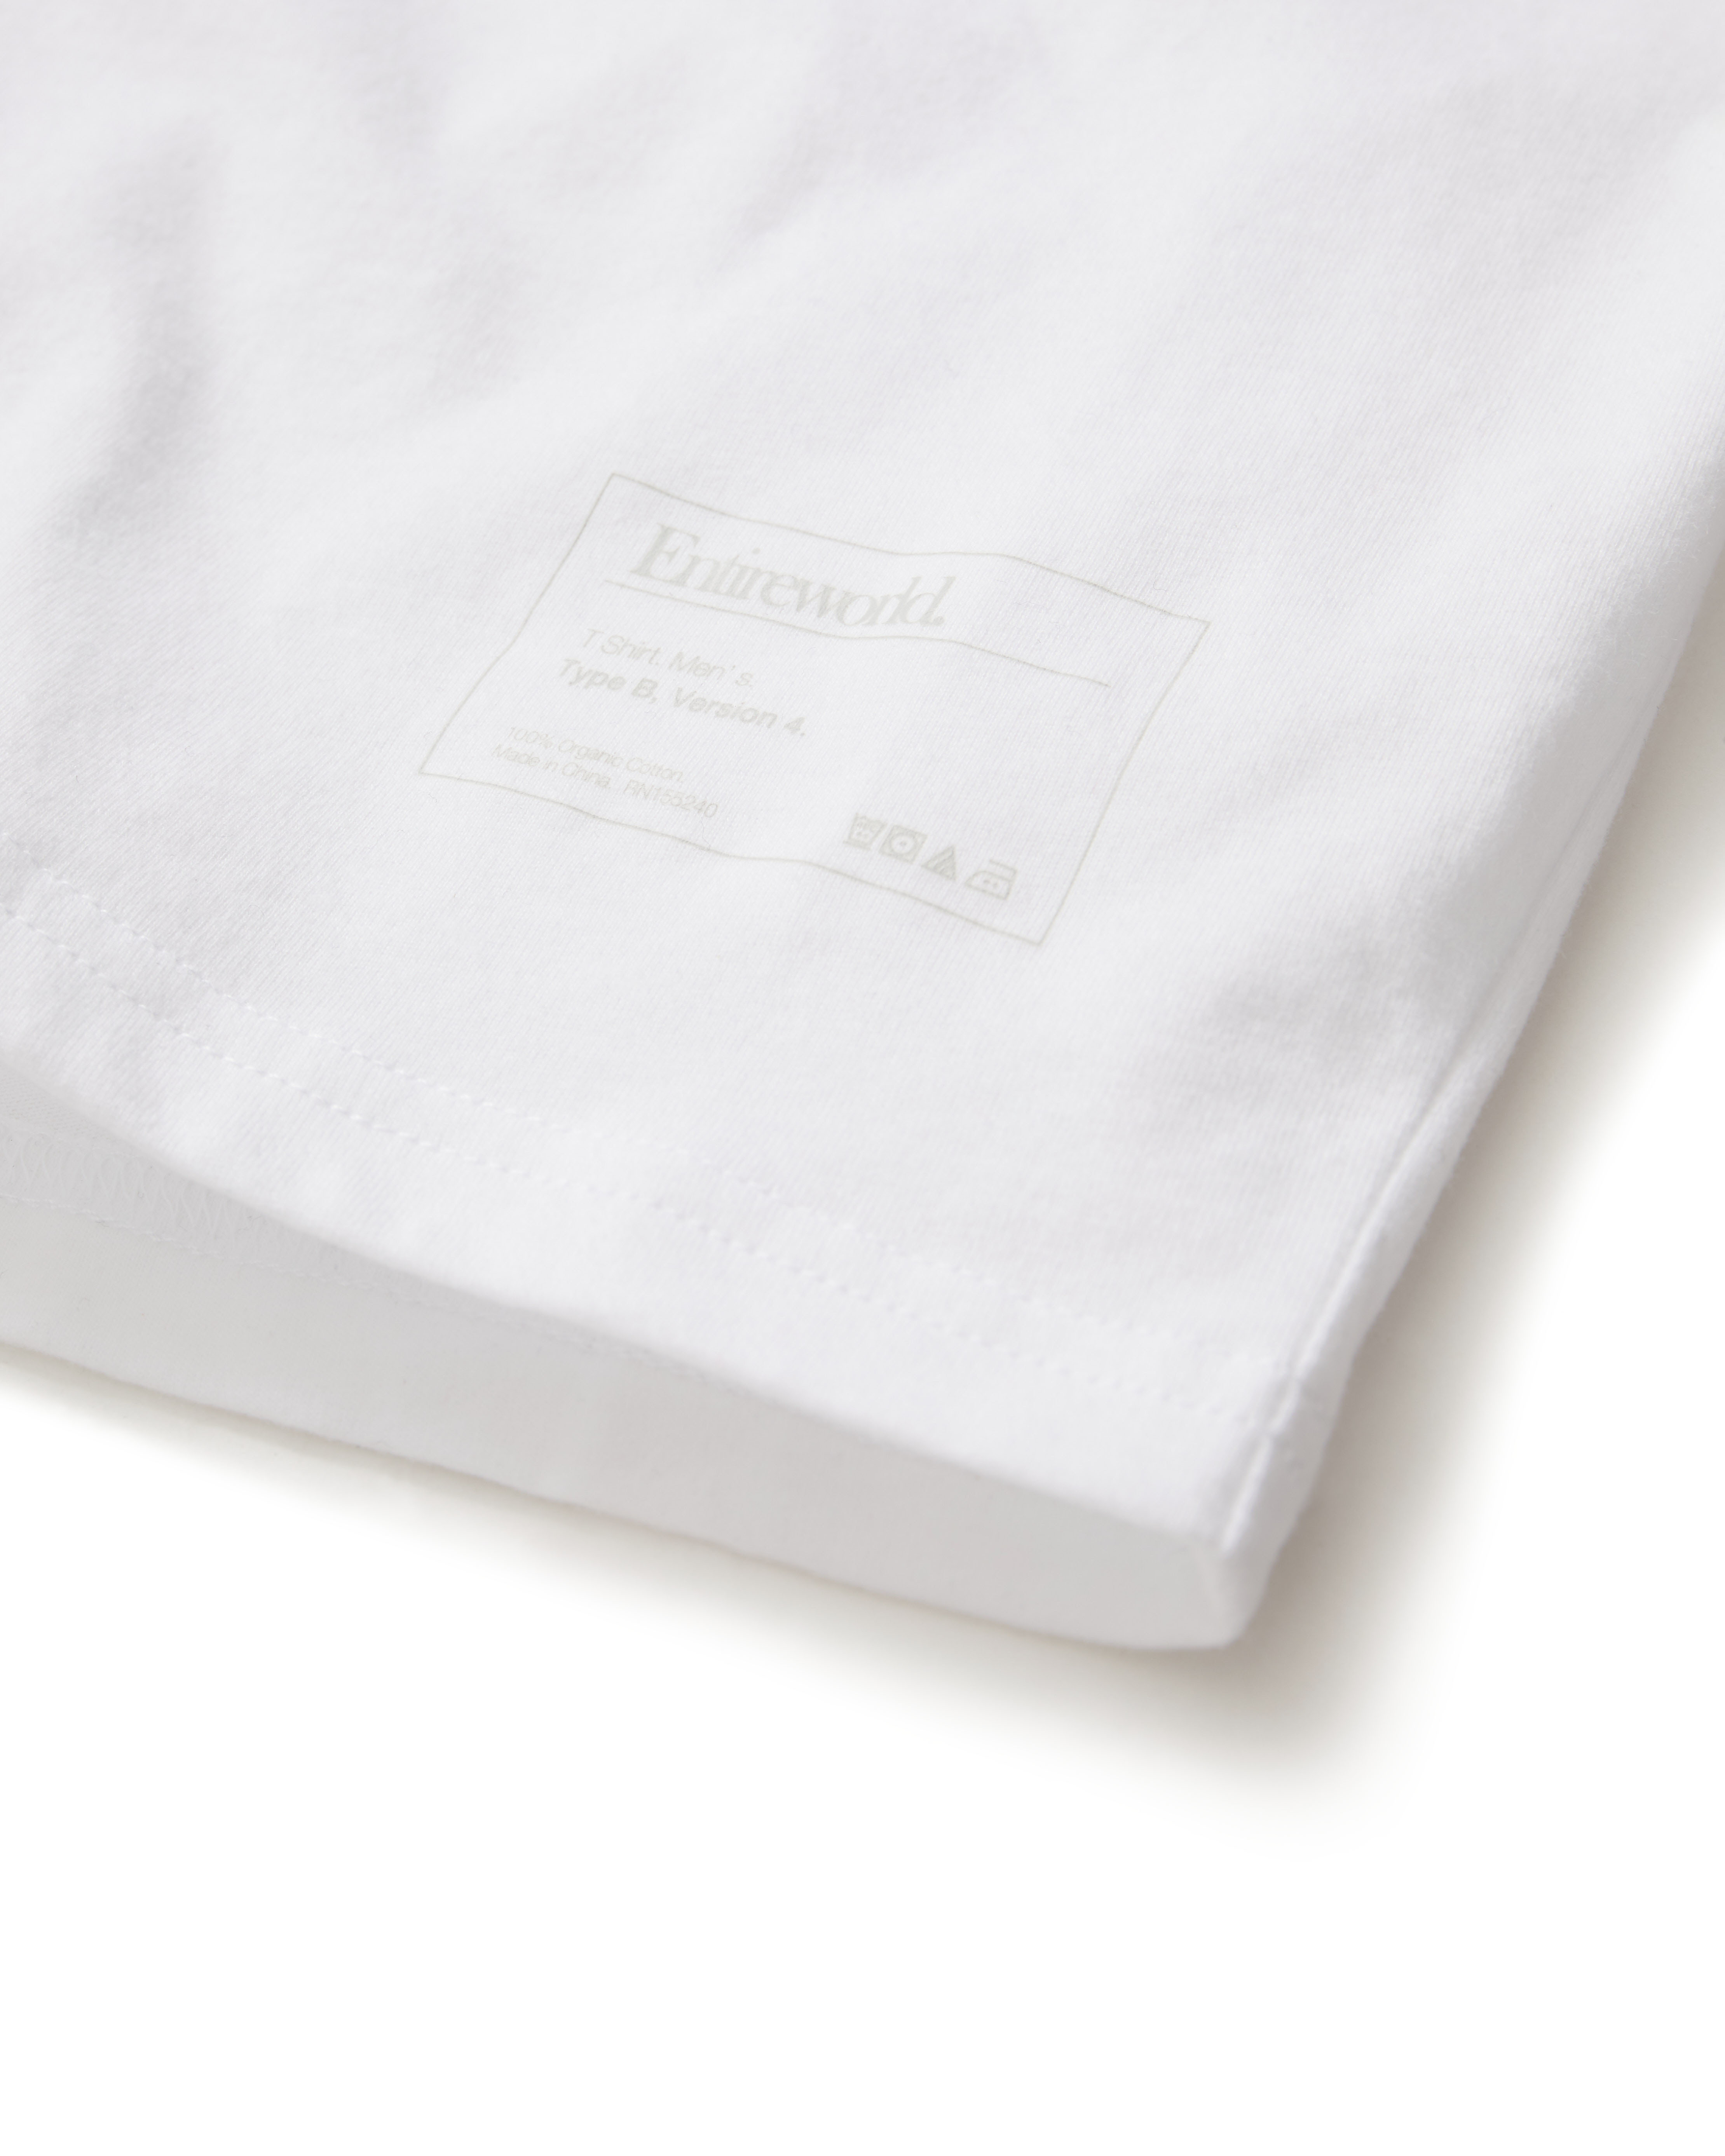 Cropped photo focusing on the lower right quadrant of a white T-shirt depicting the word Entireworld